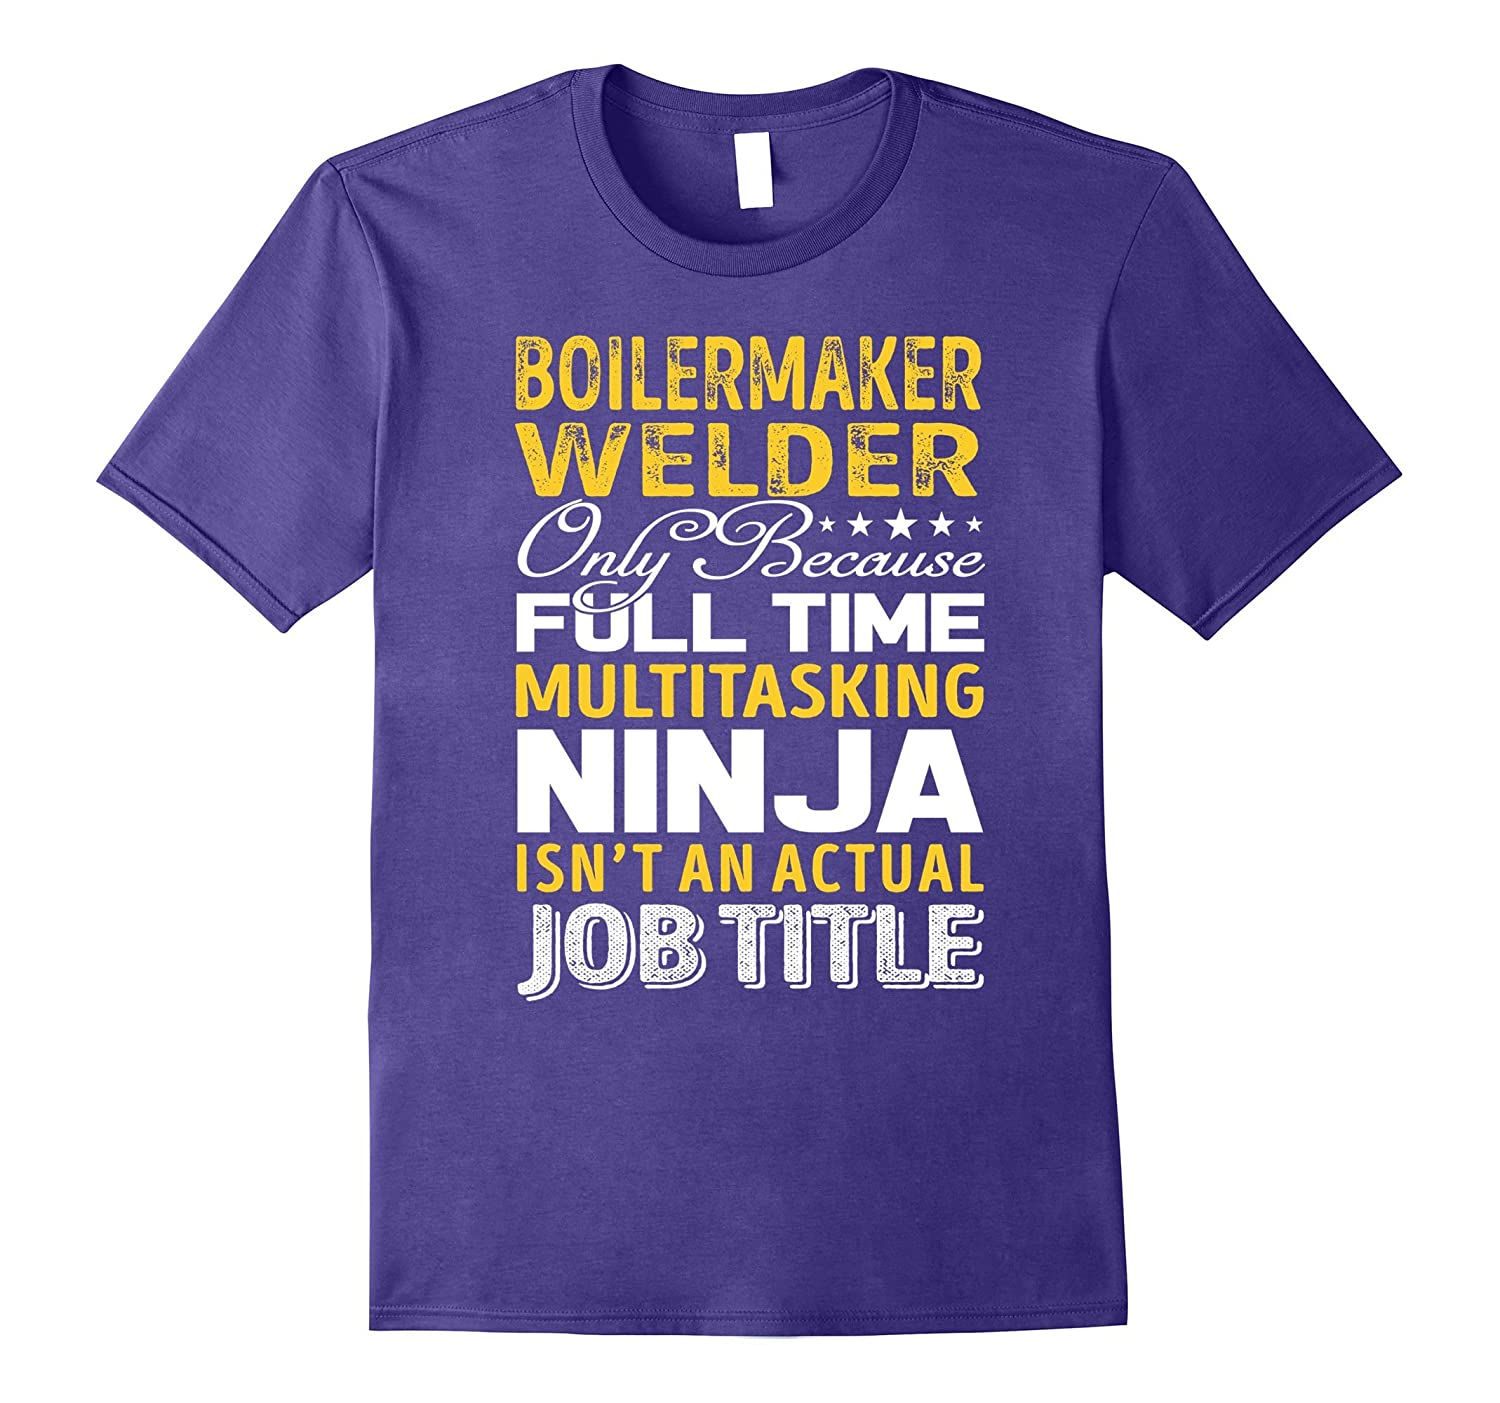 Boilermaker Welder Is Not An Actual Job Title TShirt-TJ